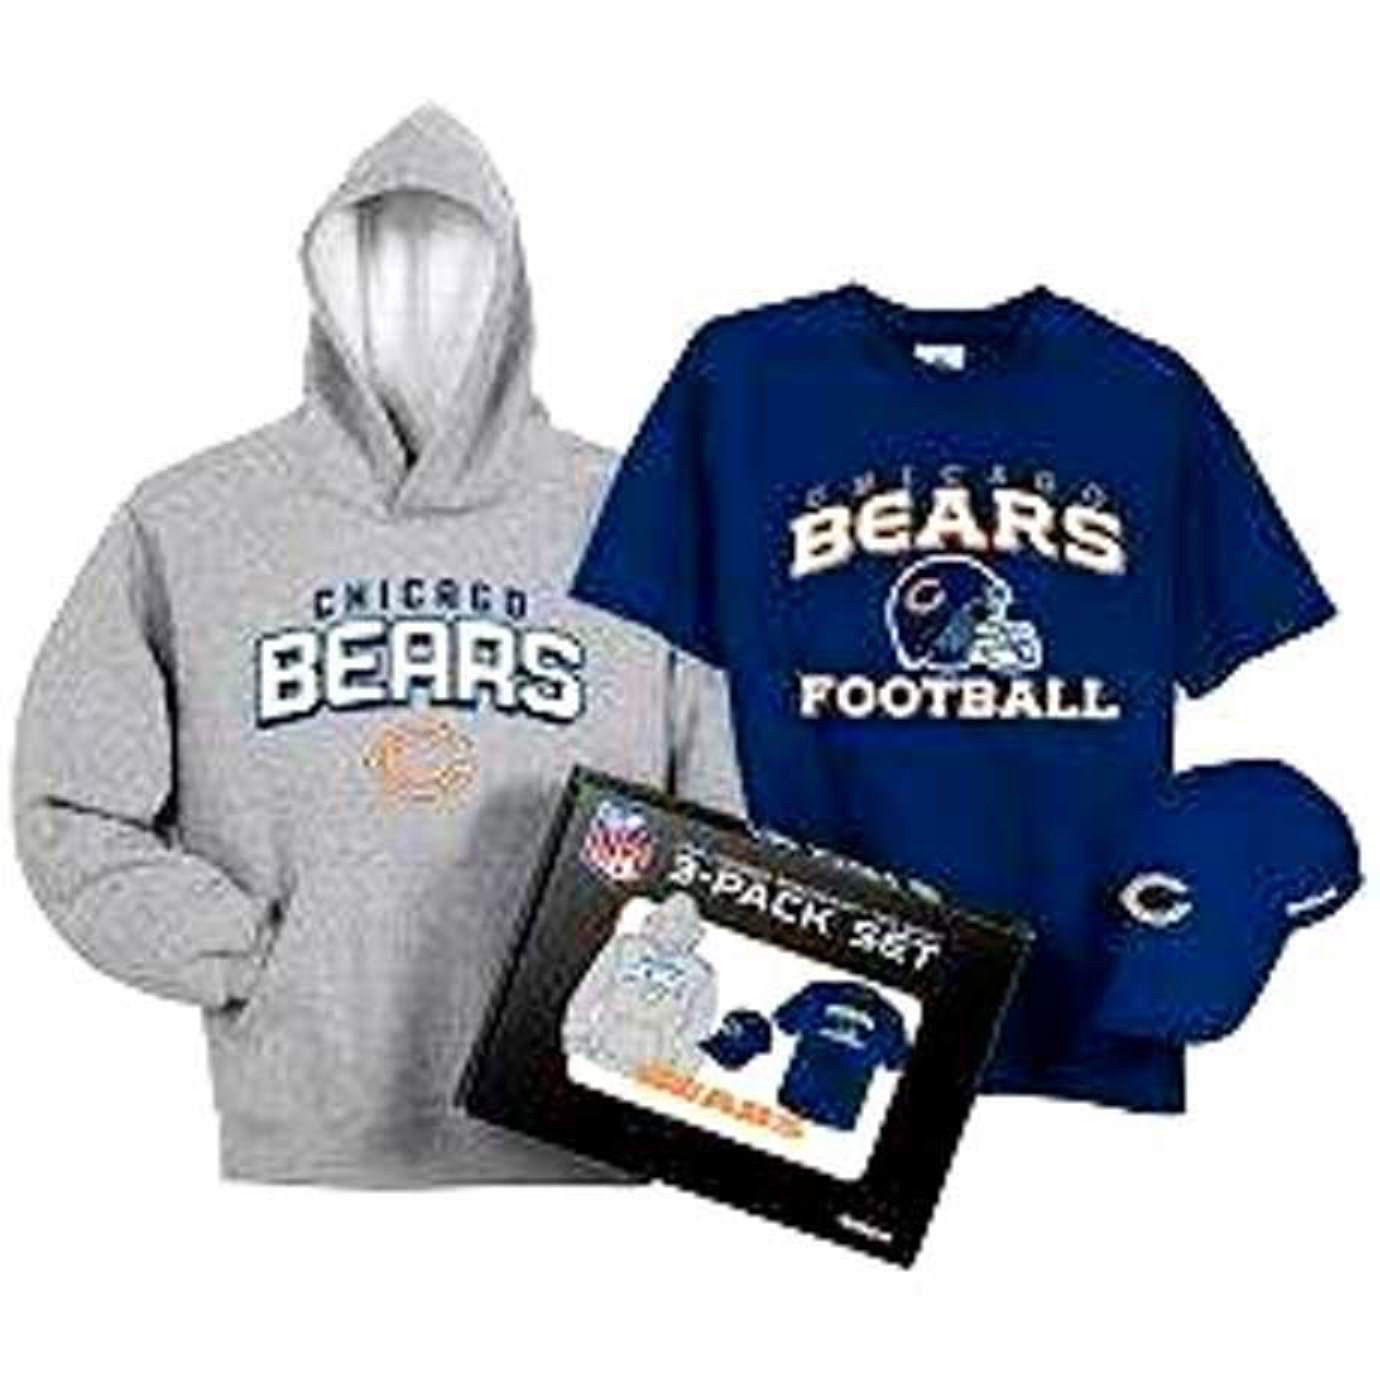 BOYS OR GIRLS 8 - Reebok - NFL Chicago Bears HOODY, HAT & T-SHIRT GIFT SET